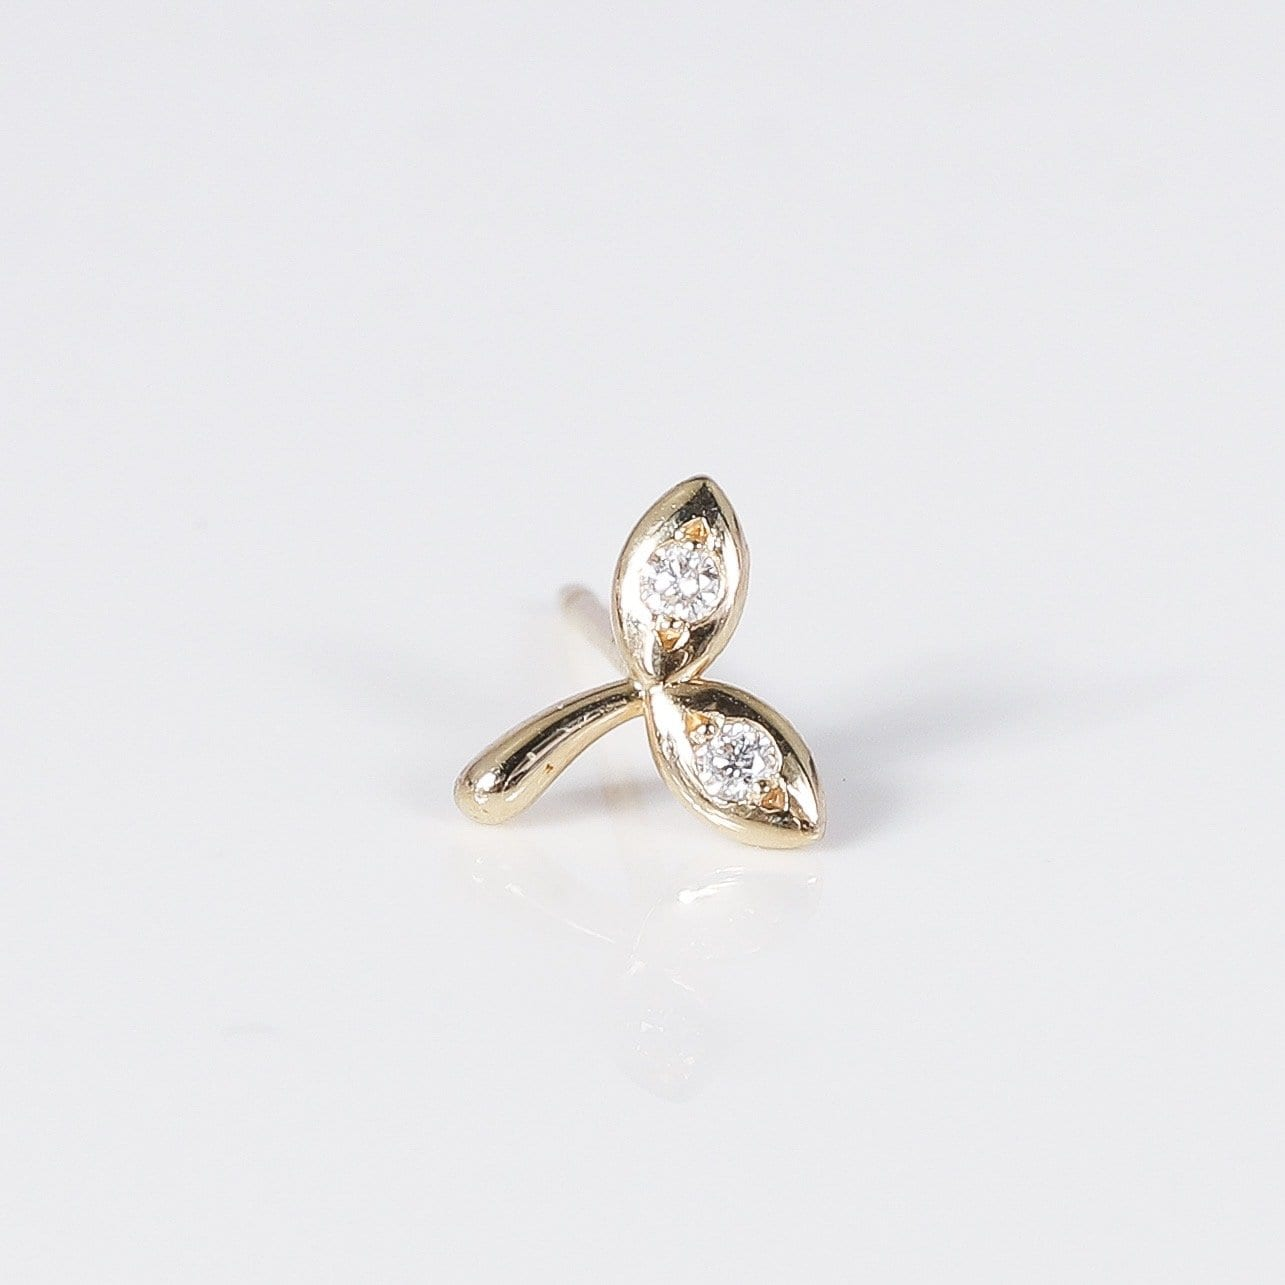 original seedling Stud Earring - 14k Yellow Gold, white Diamond